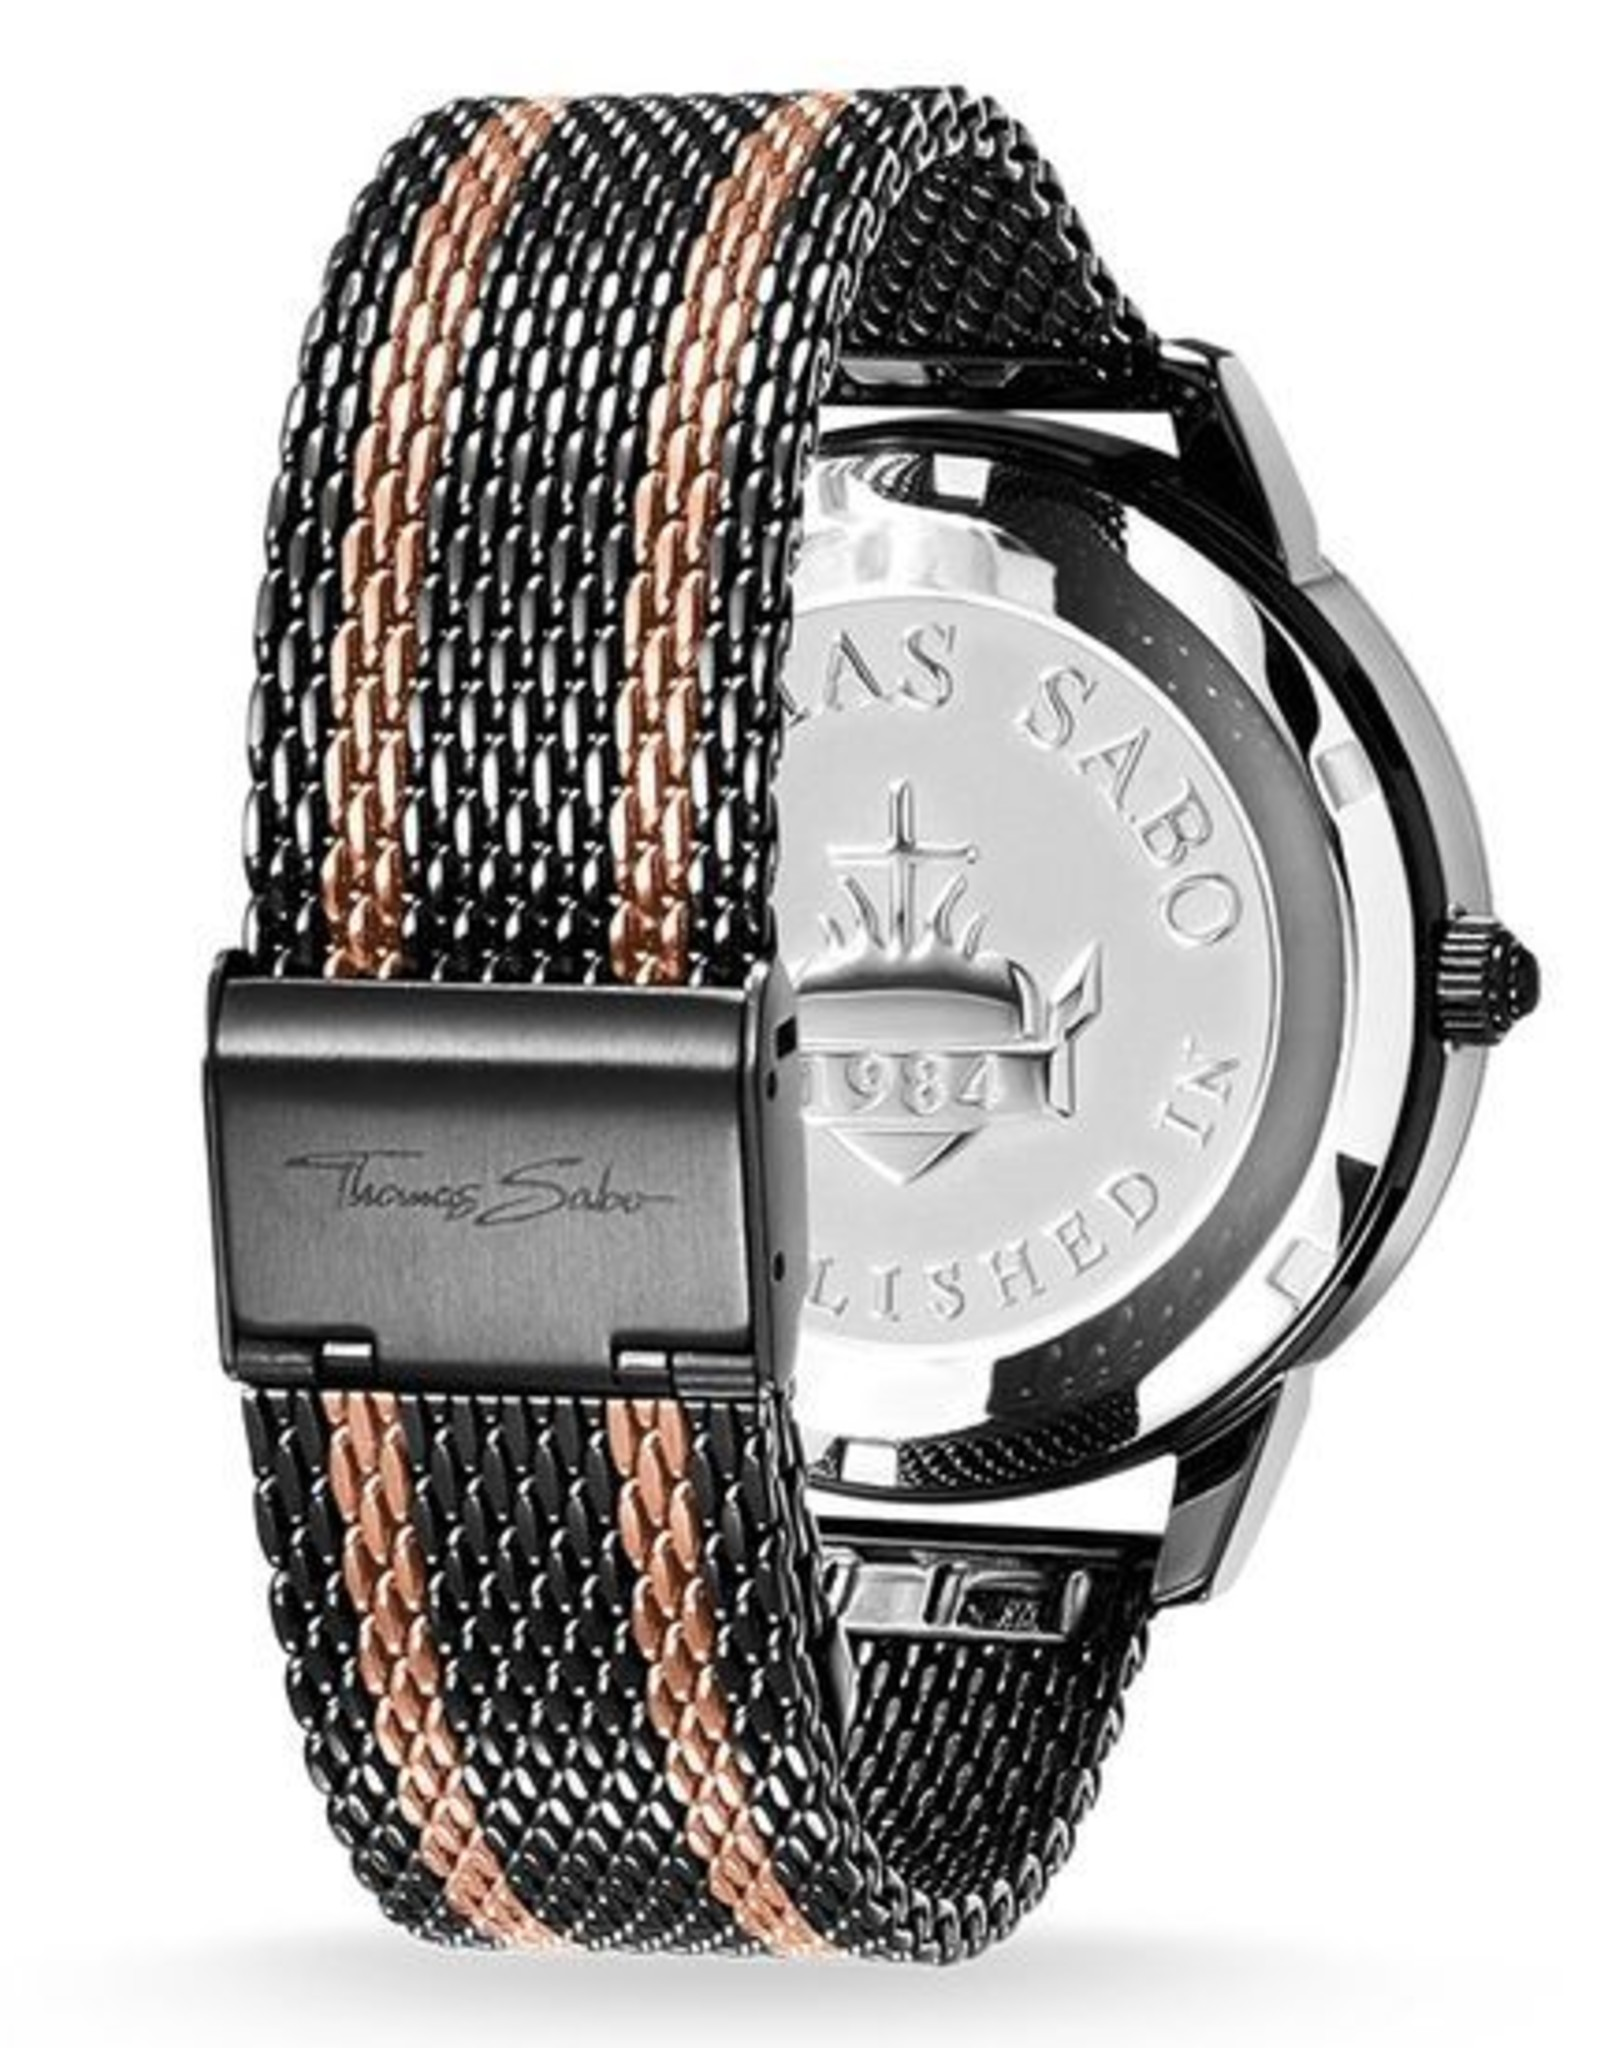 Thomas Sabo Stainless Steel Black and Rose Gold Stripes with Black Dial Watch